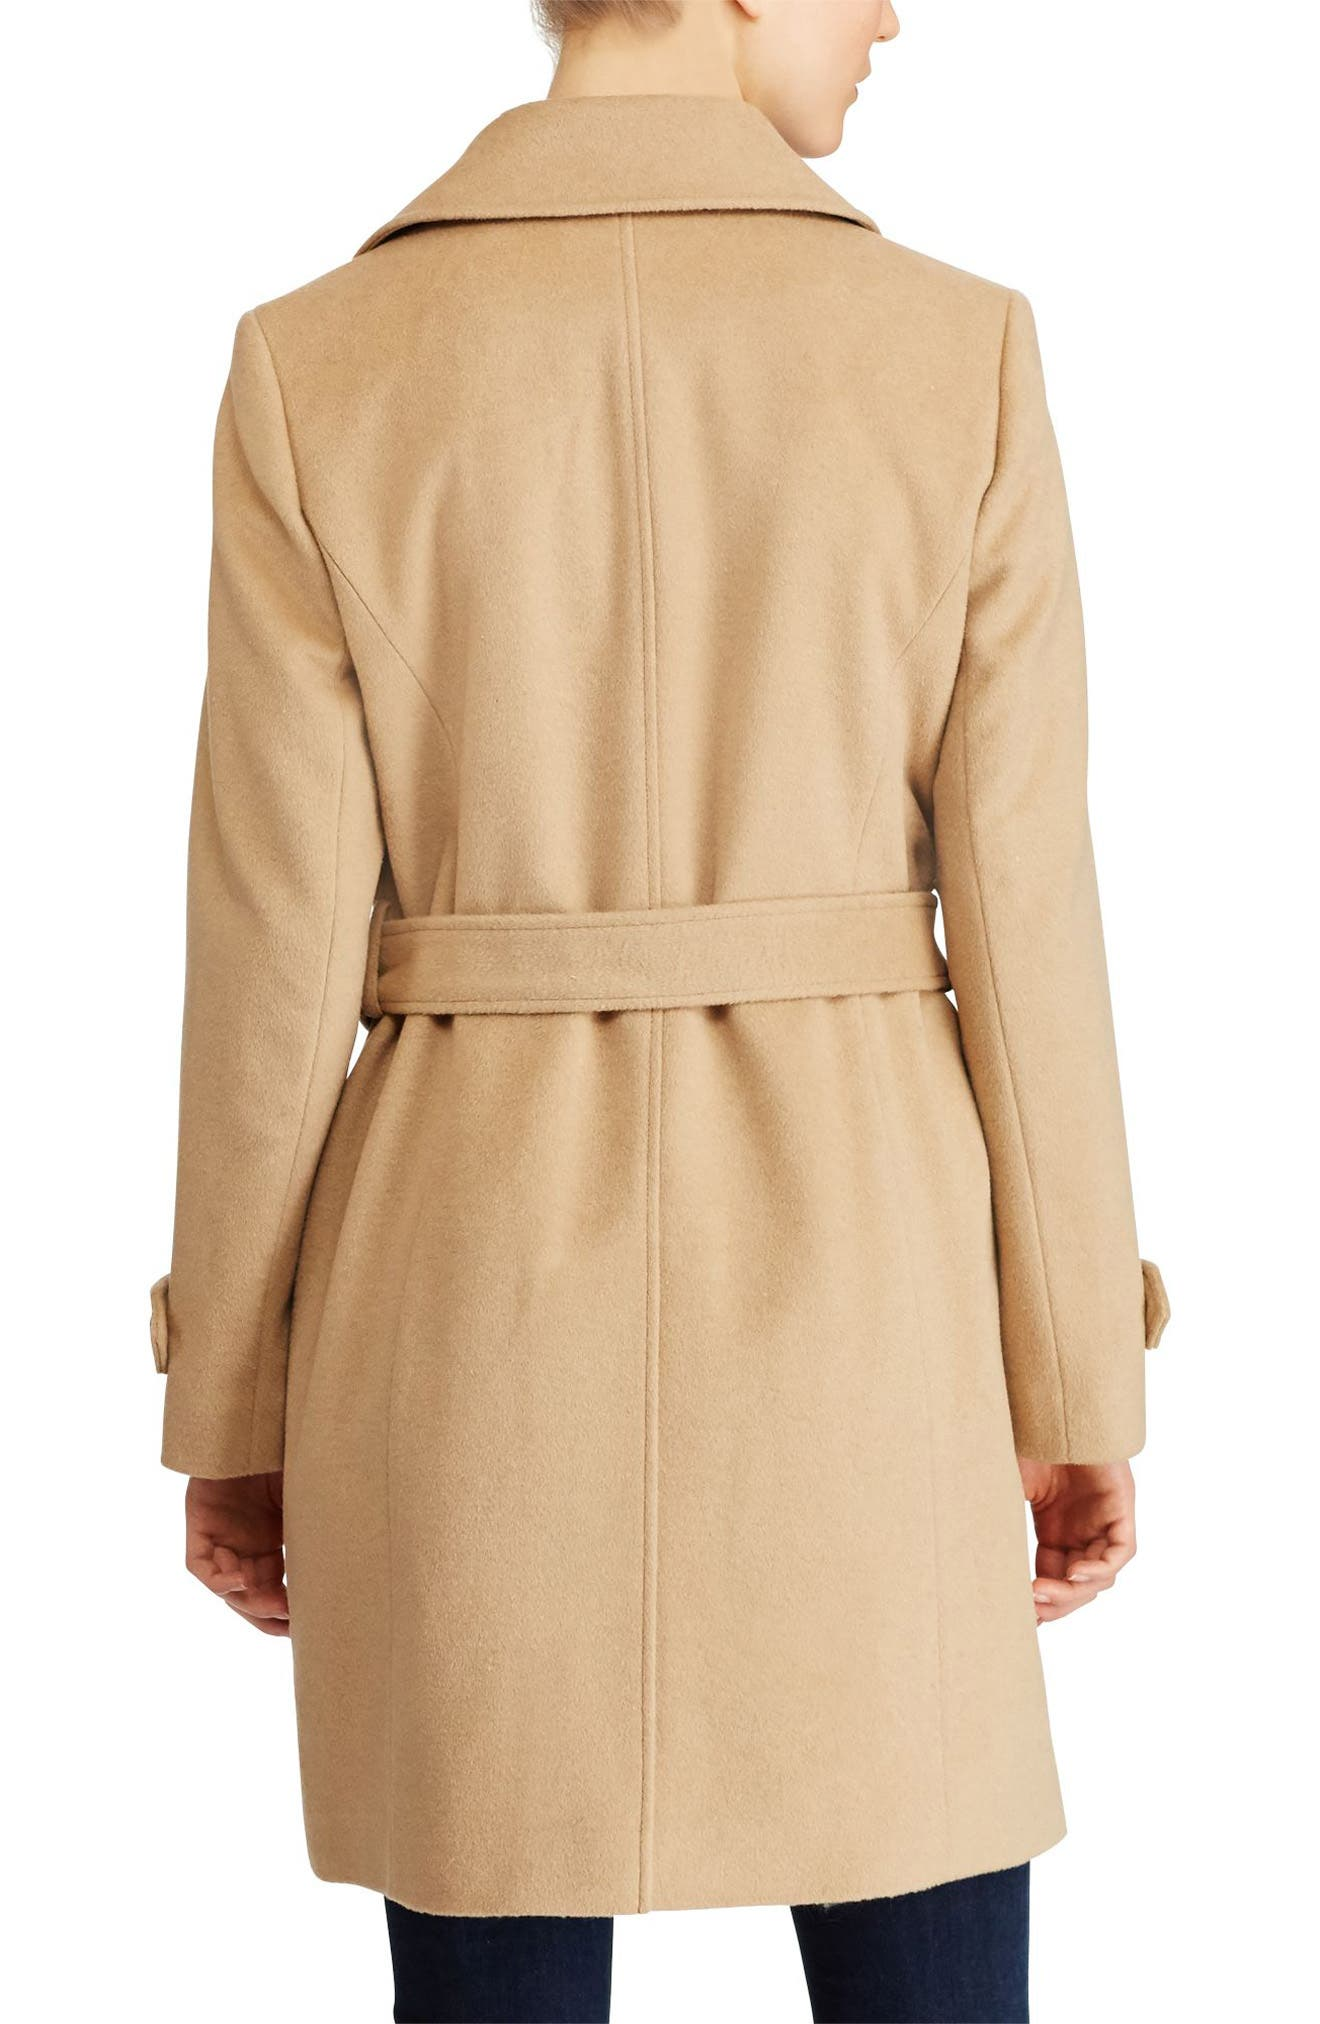 Wool Blend Trench Coat,                             Alternate thumbnail 3, color,